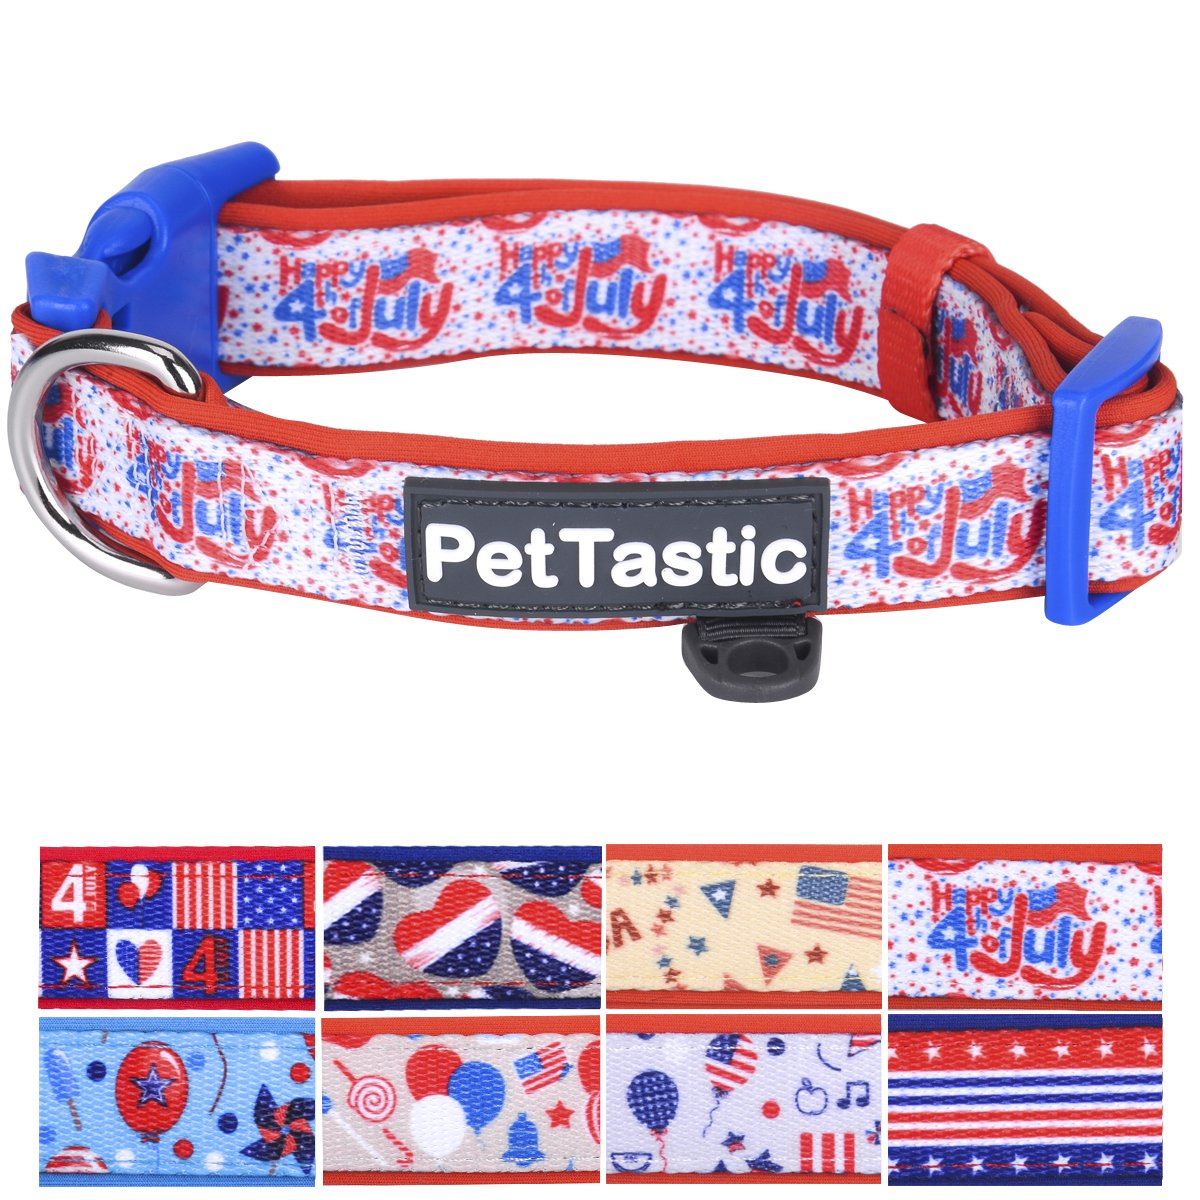 Medium Best Adjustable Medium Dog Collar PetTastic Durable Soft & Heavy Duty with Cute Independent Day Design, Outdoor & Indoor use Comfort Dog Collar for Girls, Boys, Puppy, Adults, Including ID Tag Ring